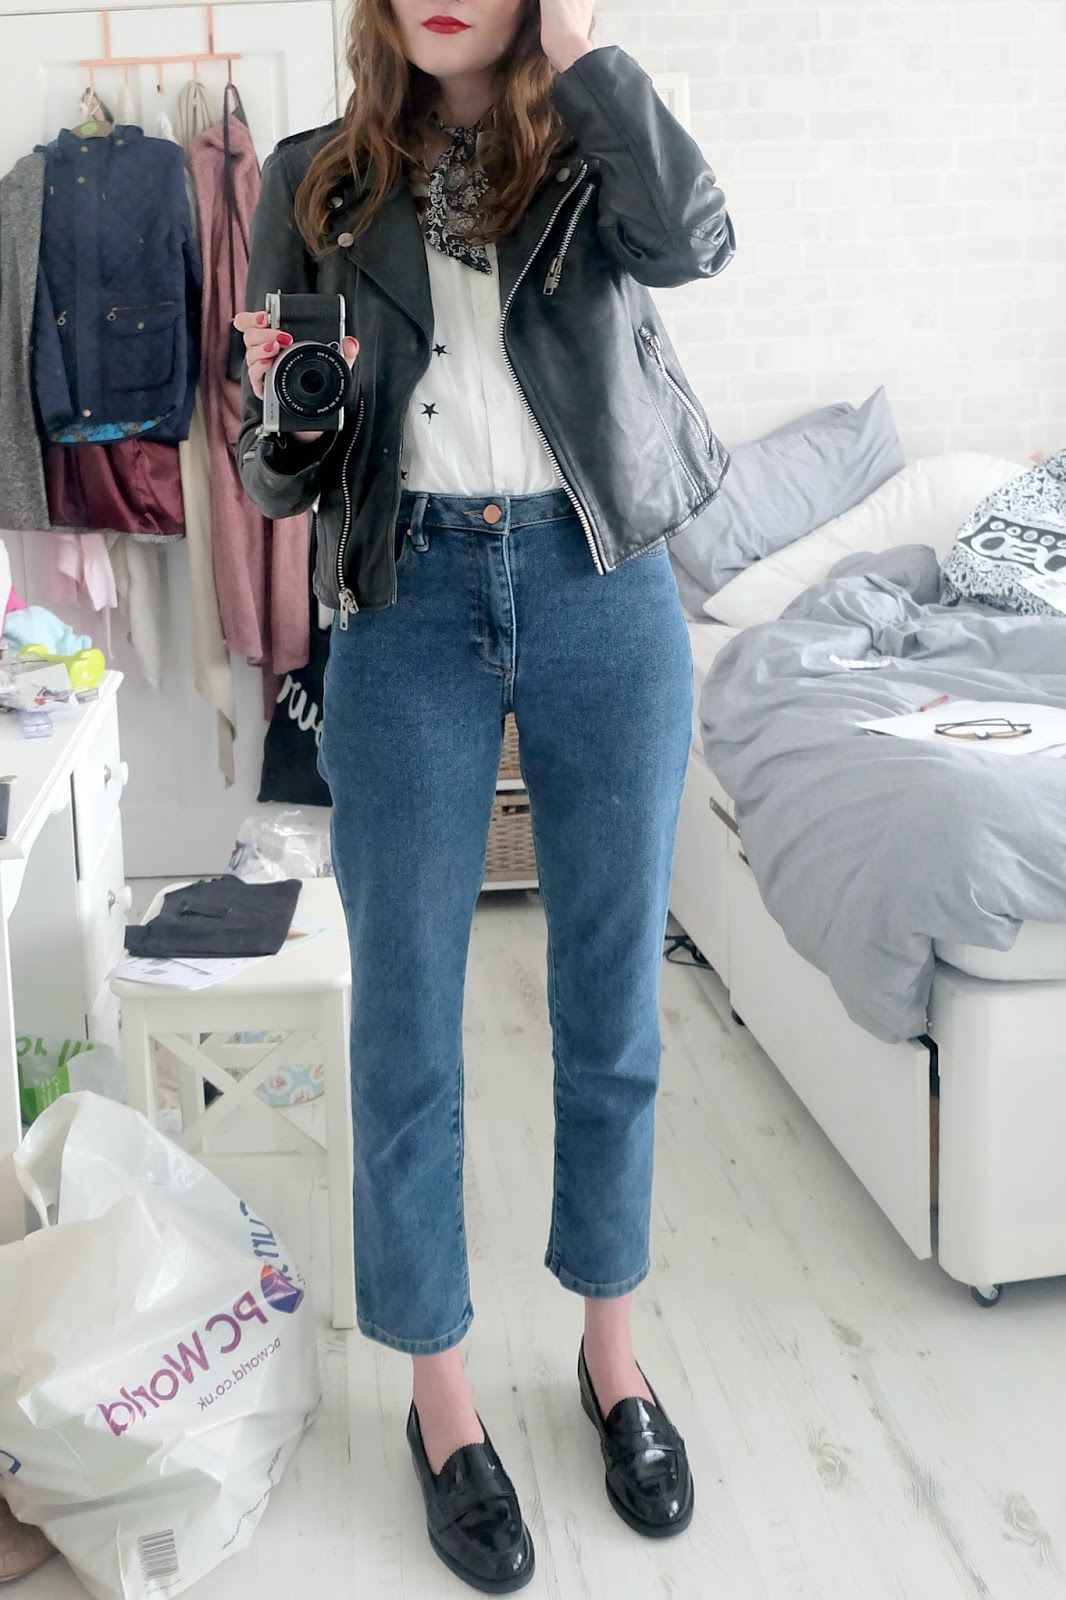 warehouse straight leg jeans review, mango embroidered star shirt, red lipstick outfit, dune lexus loafers, leather jacket outfit